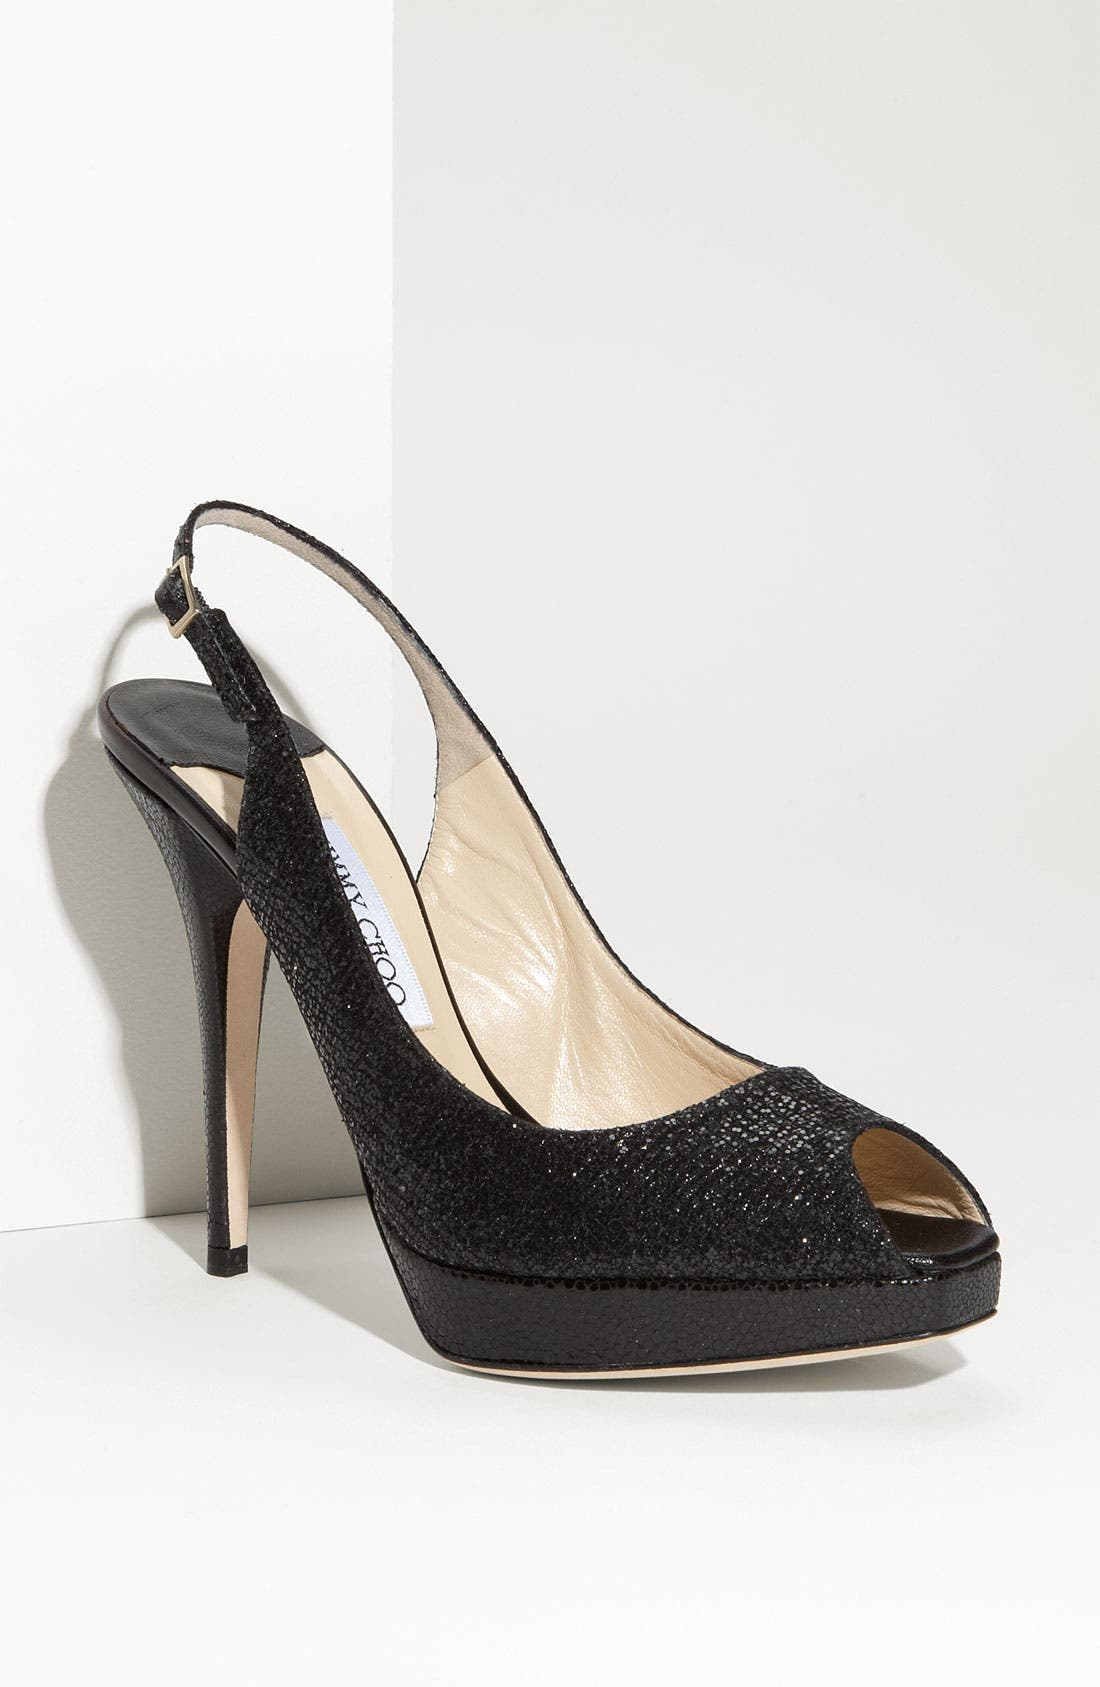 Alternate Image 1 Selected - Jimmy Choo 'Clue' Glitter Slingback Pump (Women)